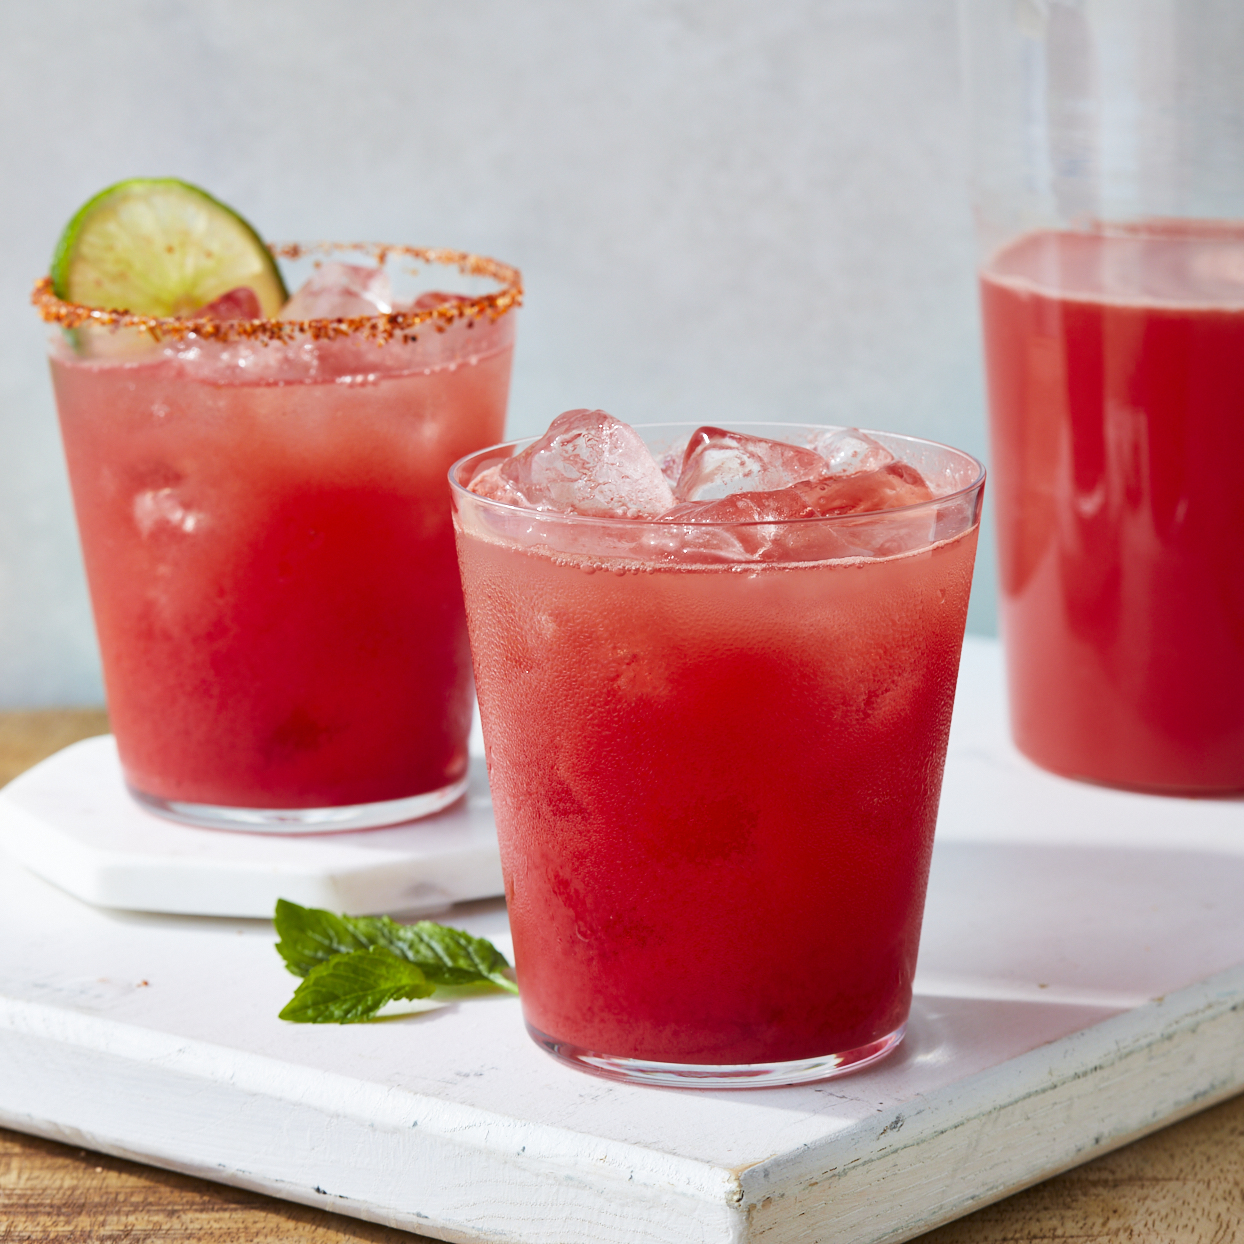 Clean and simple, it just takes a blender to whip up this DIY watermelon juice. You can enjoy this refreshing drink with no added sugar on its own, or jazz it up with one of our variations (see below). Source: EatingWell.com, February 2020